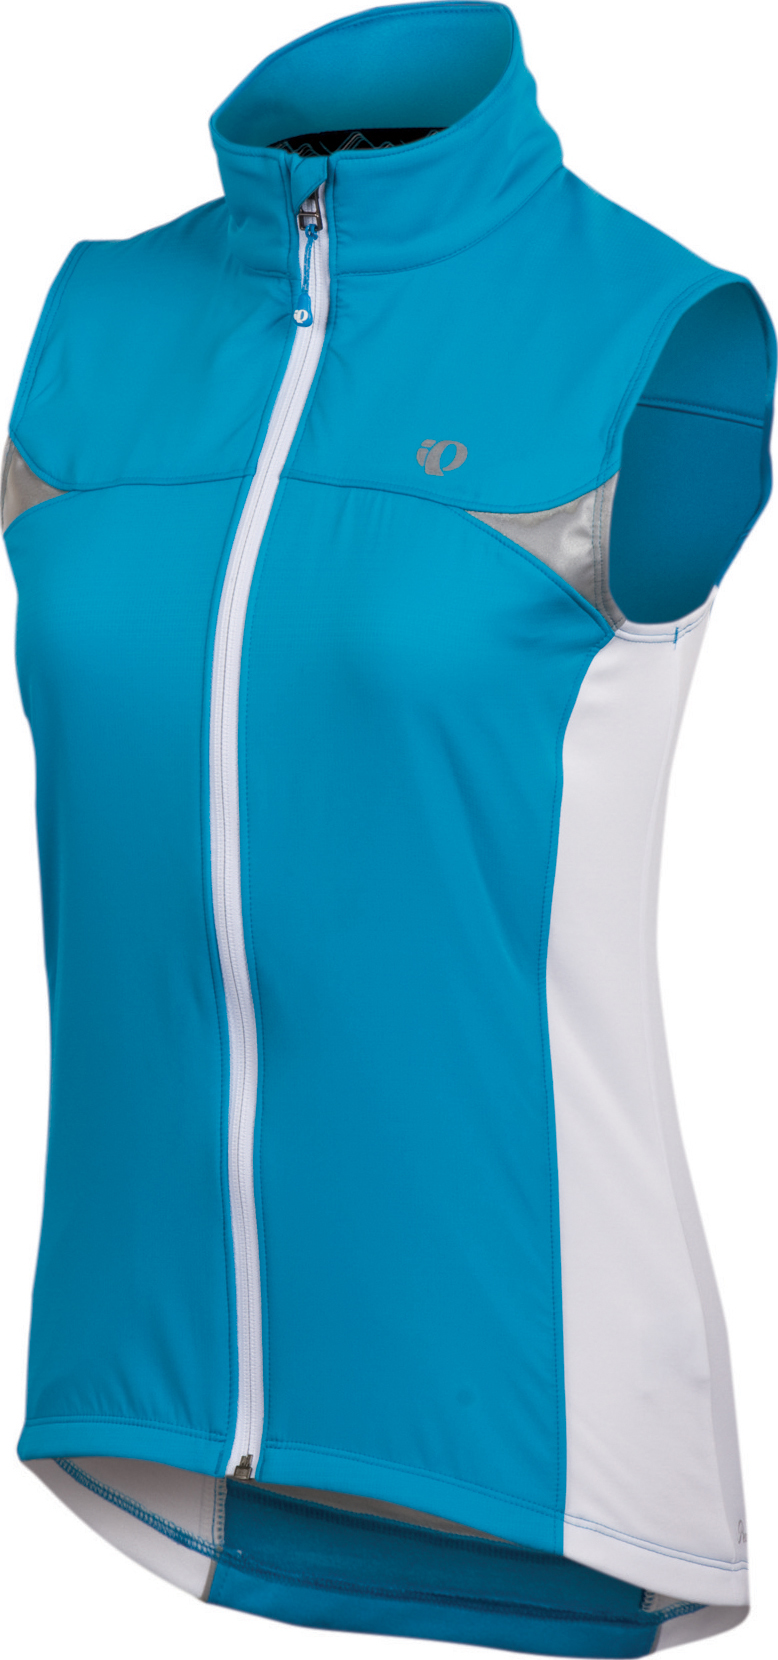 PEARL iZUMi W ELITE THERMAL BARRIER vesta*, M